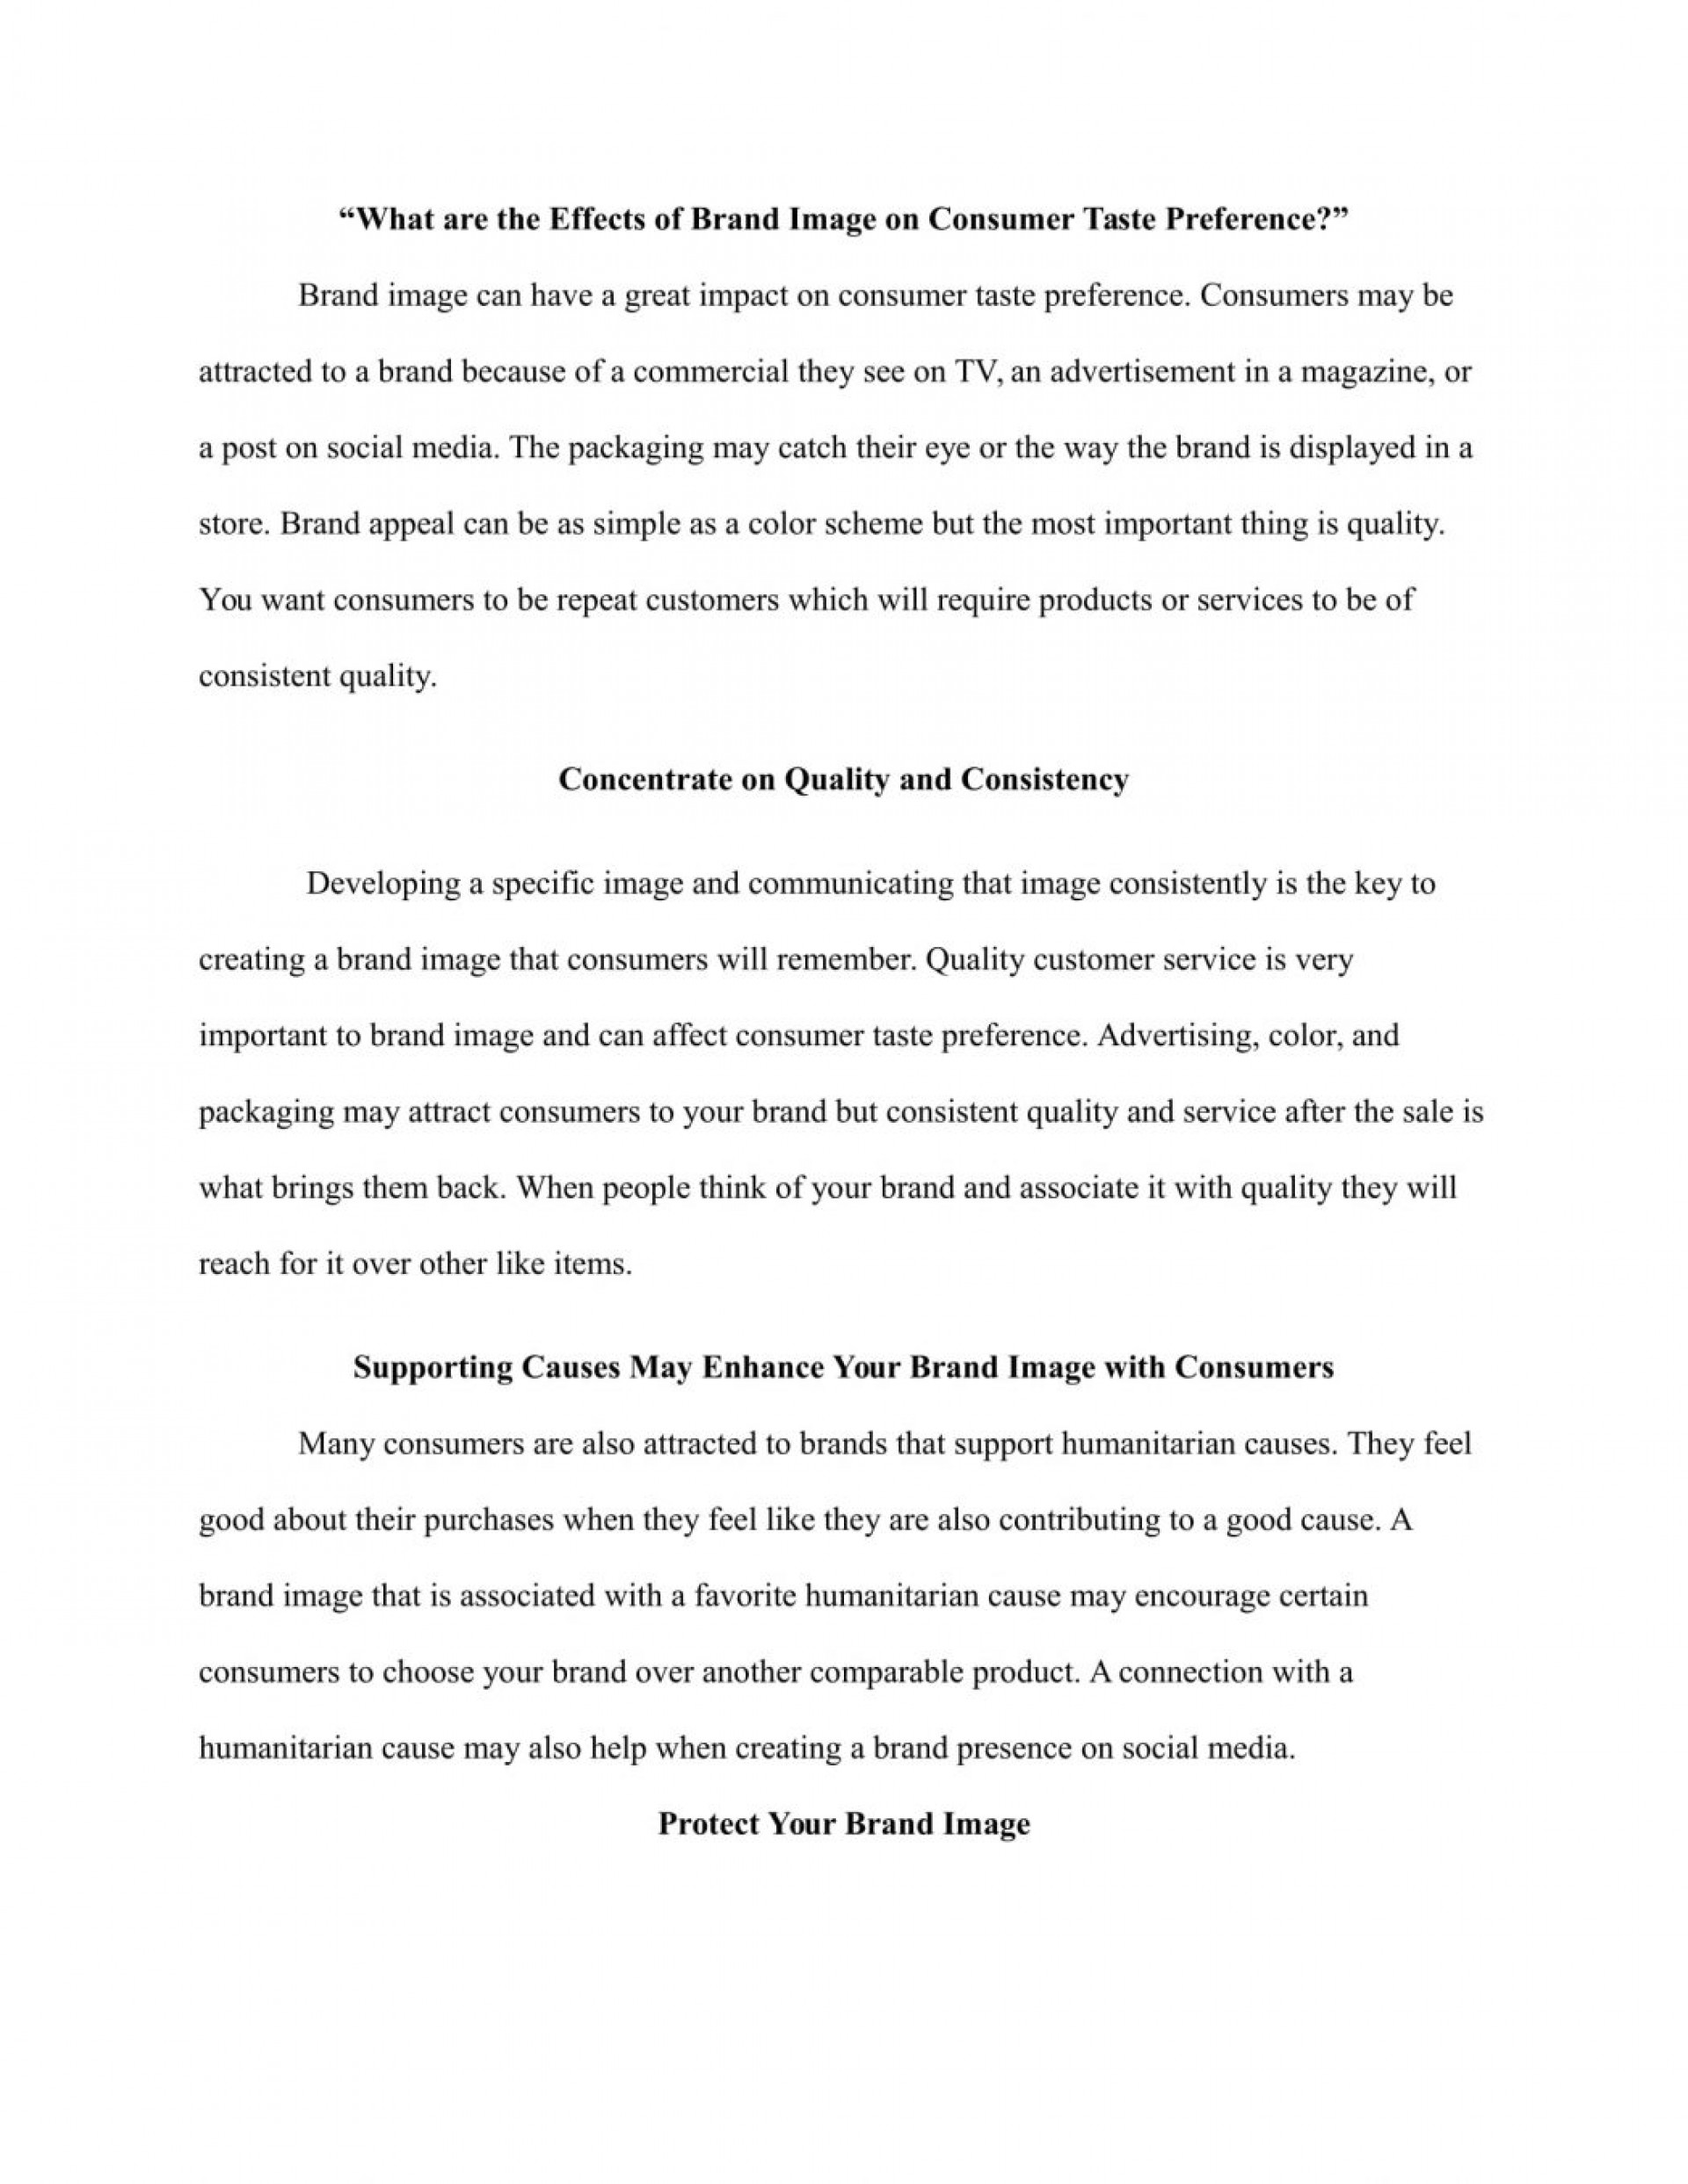 010 College Essay Heading Brand Expositions Engineering Application Expository Sam Margins Sample Personal Format Papers Entrance 1048x1356 Incredible Admissions Example 1920